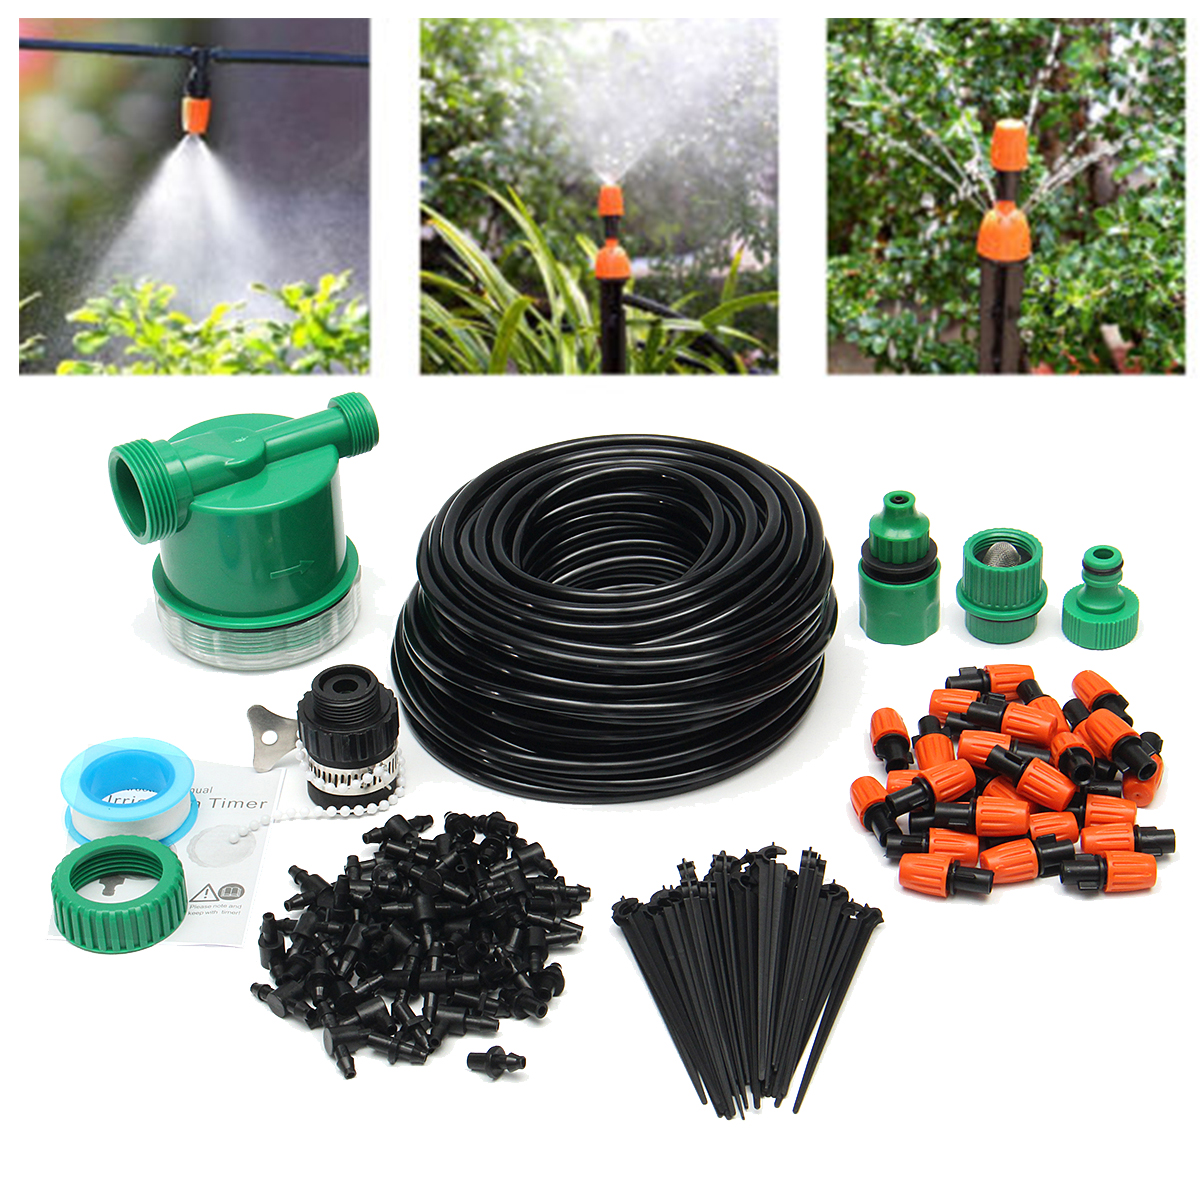 122Pcs Automatic Drip Irrigation DIY Watering System Sprinkler Electronic Control Timer Garden Hose 25M